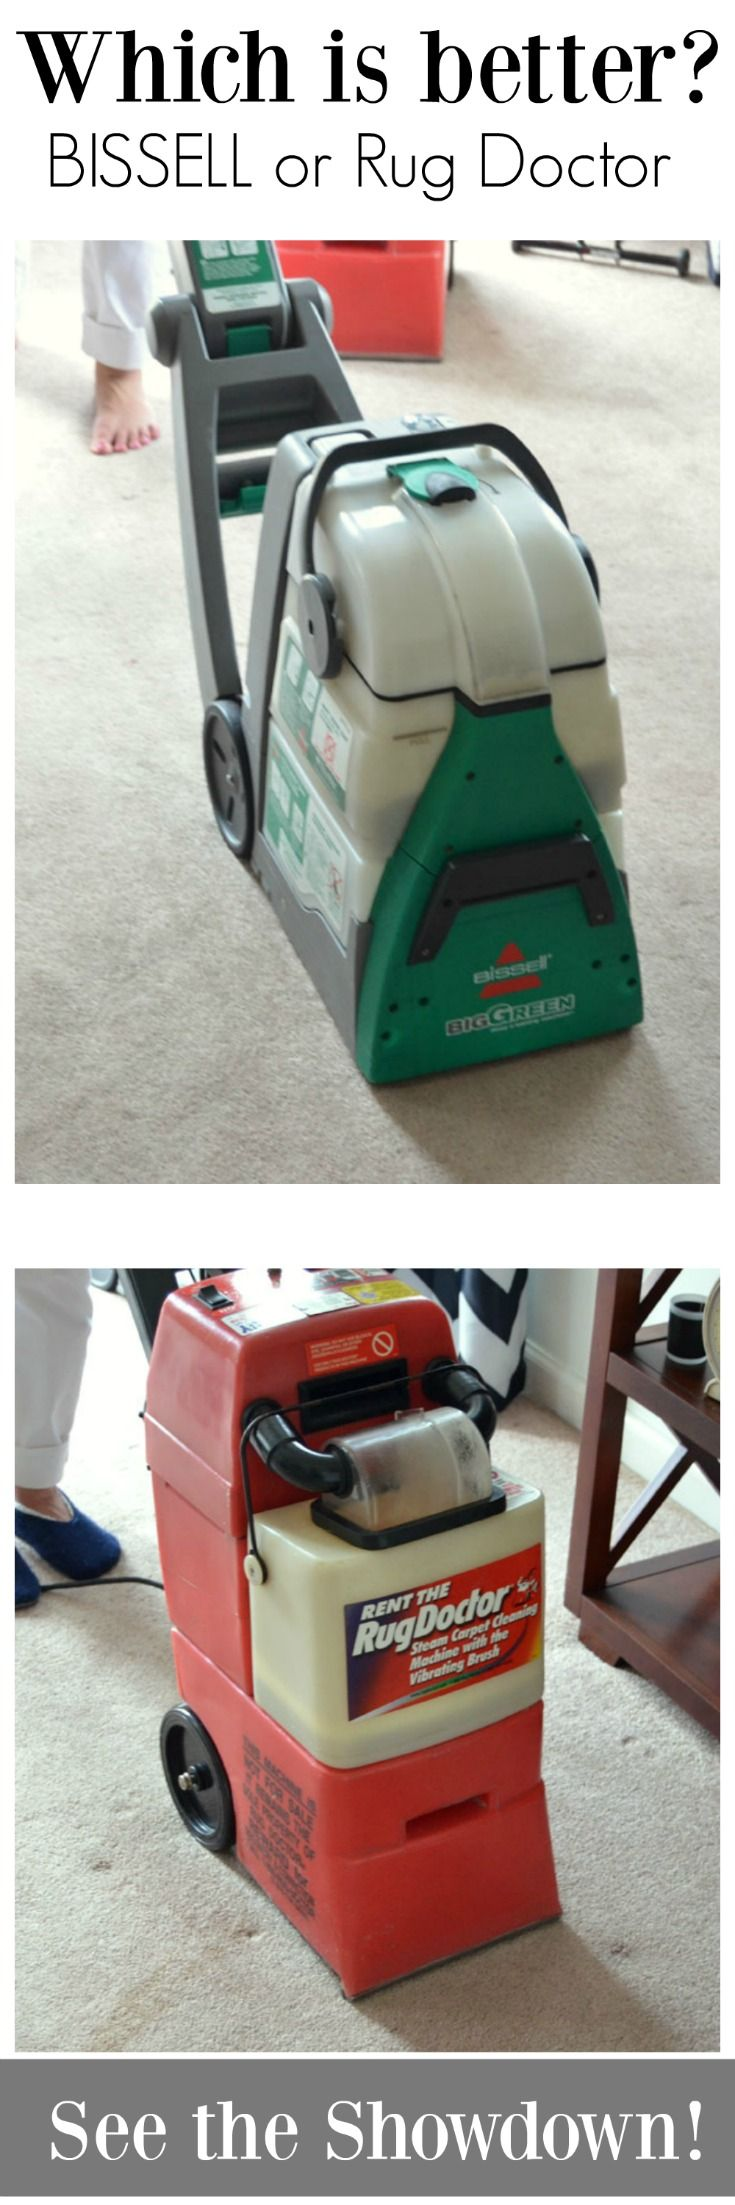 Which Carpet Cleaner Rental Machine Is Better With Images Carpet Cleaning Machines Diy Carpet Cleaner How To Clean Carpet